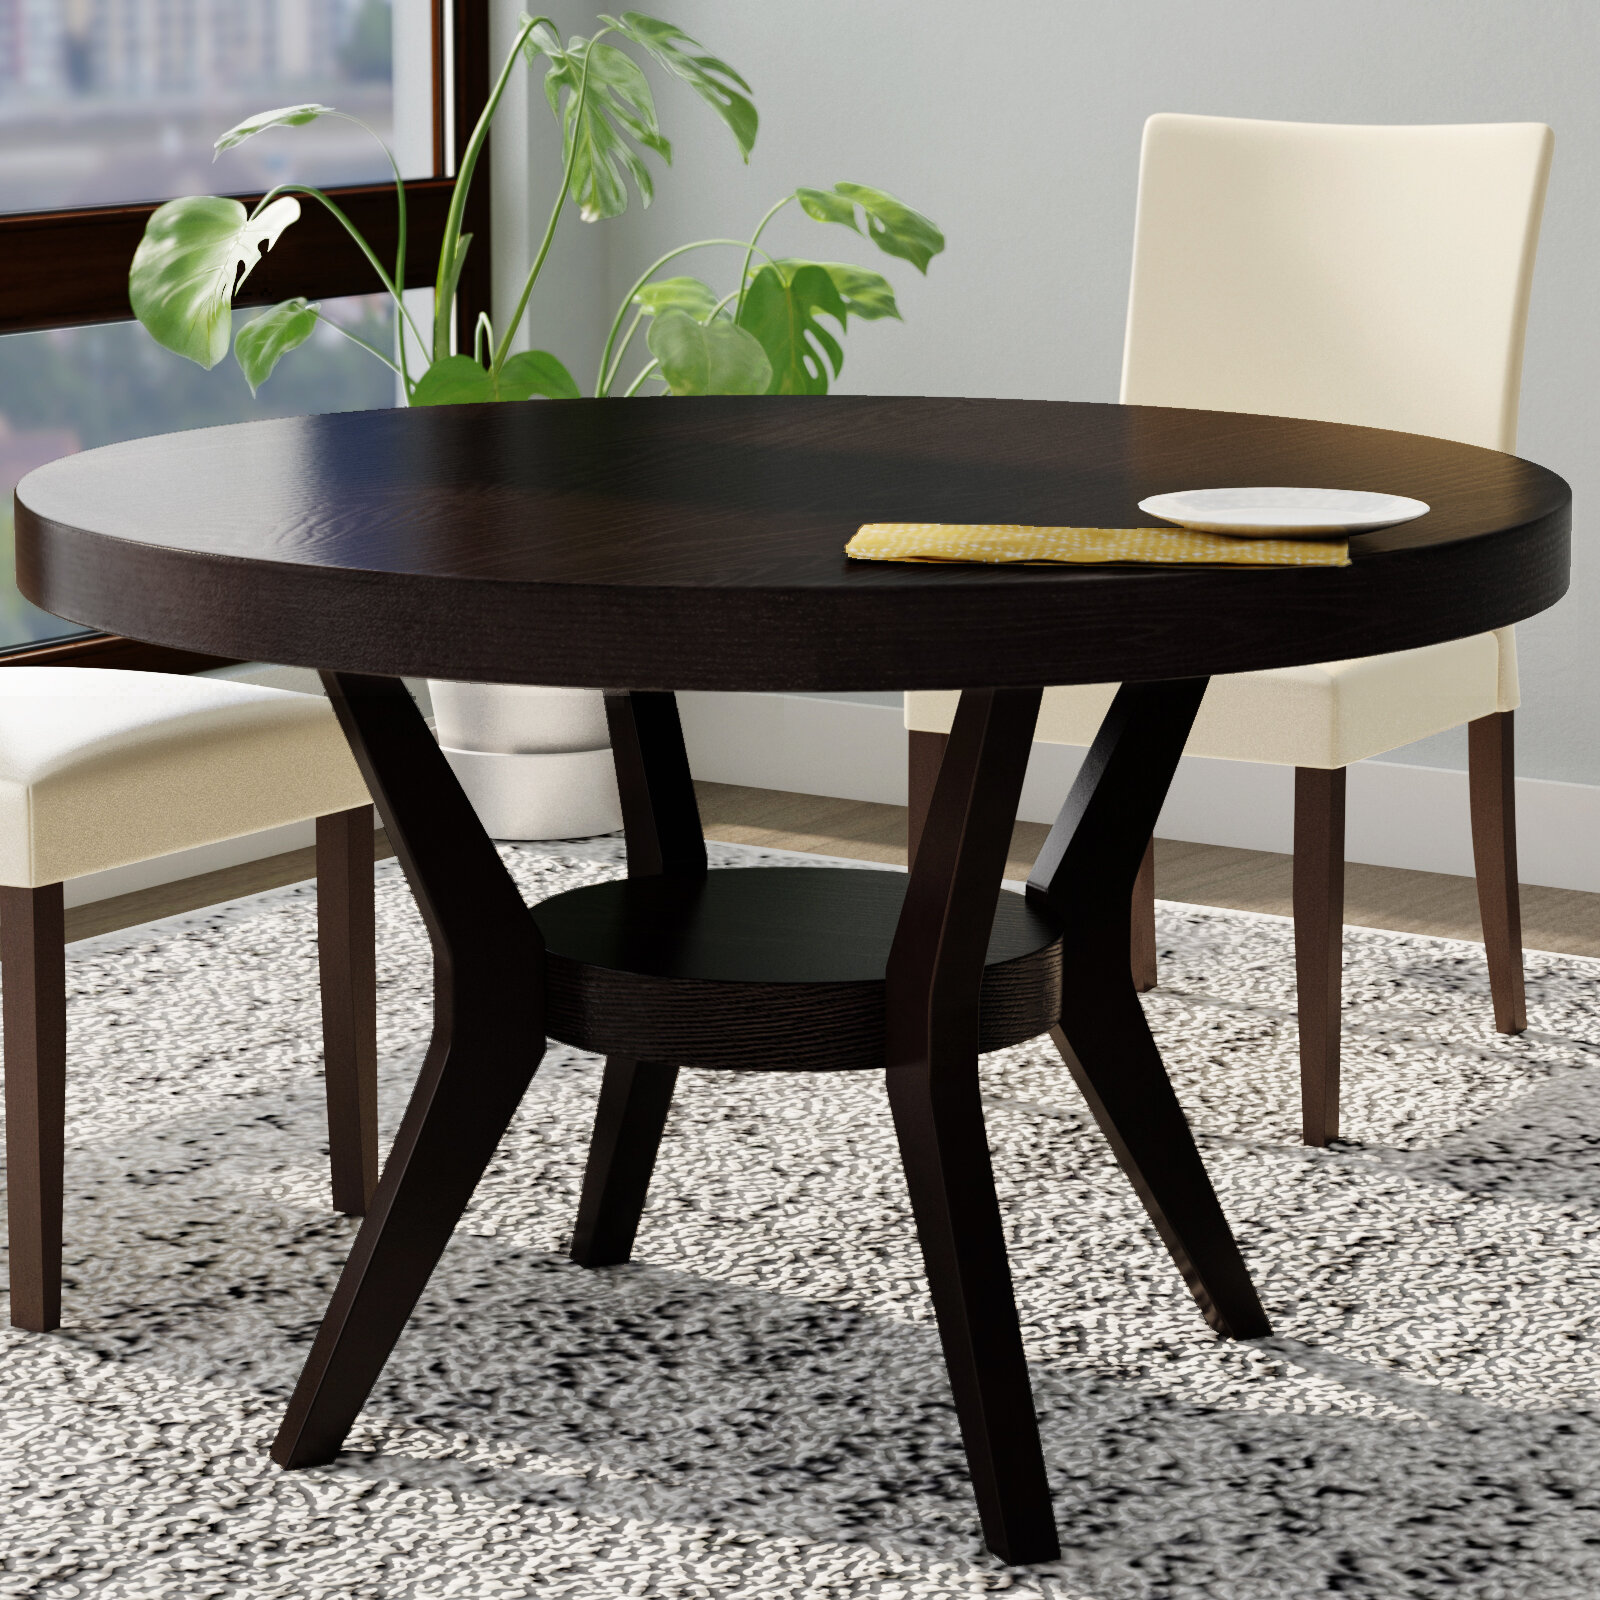 Superbe Latitude Run Connor Transitional Dining Table U0026 Reviews | Wayfair